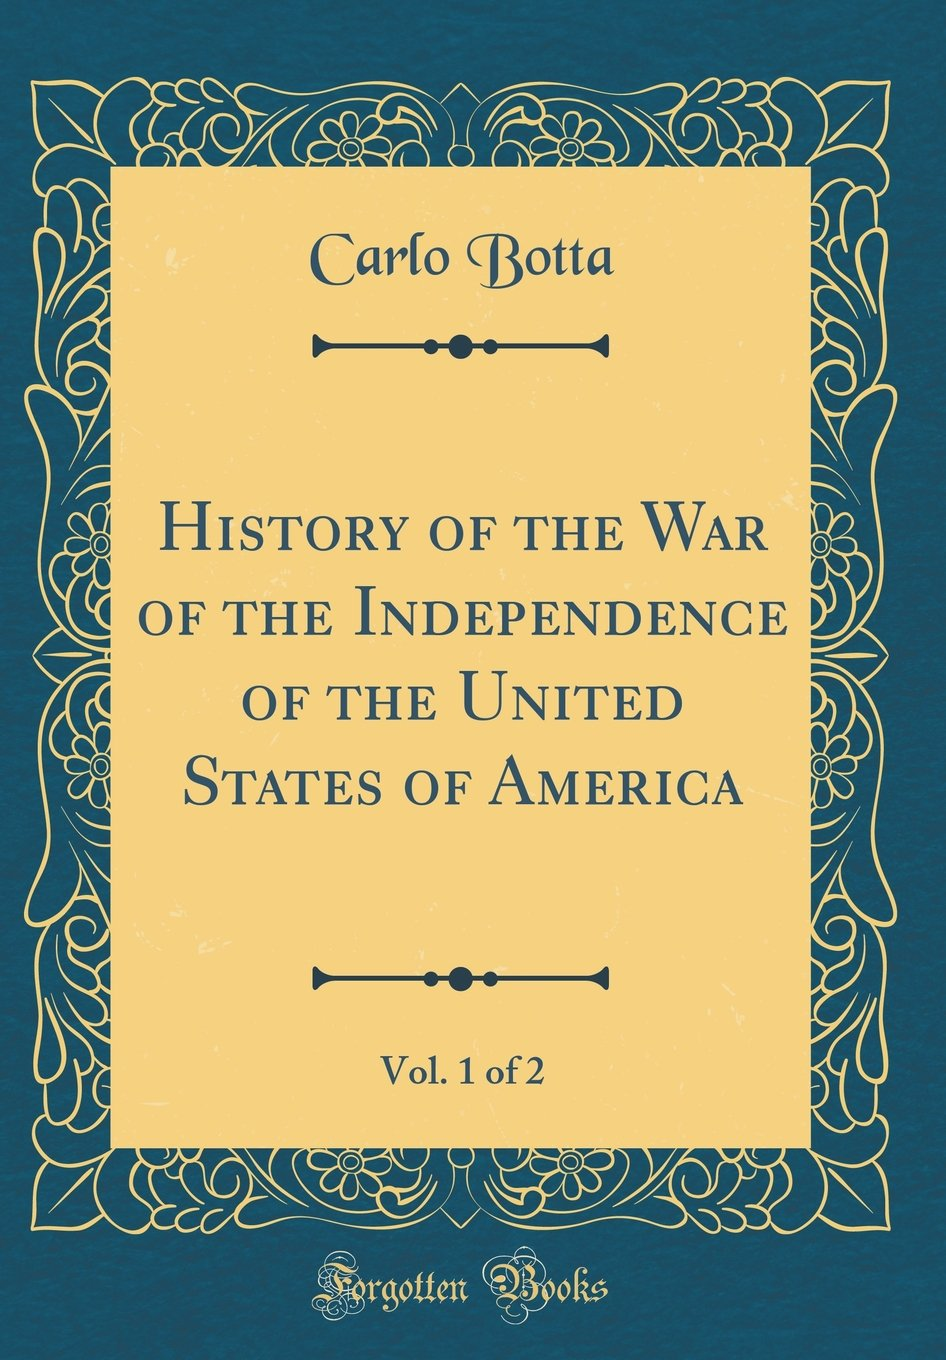 History of the War of the Independence of the United States of America, Vol. 1 of 2 (Classic Reprint) pdf epub